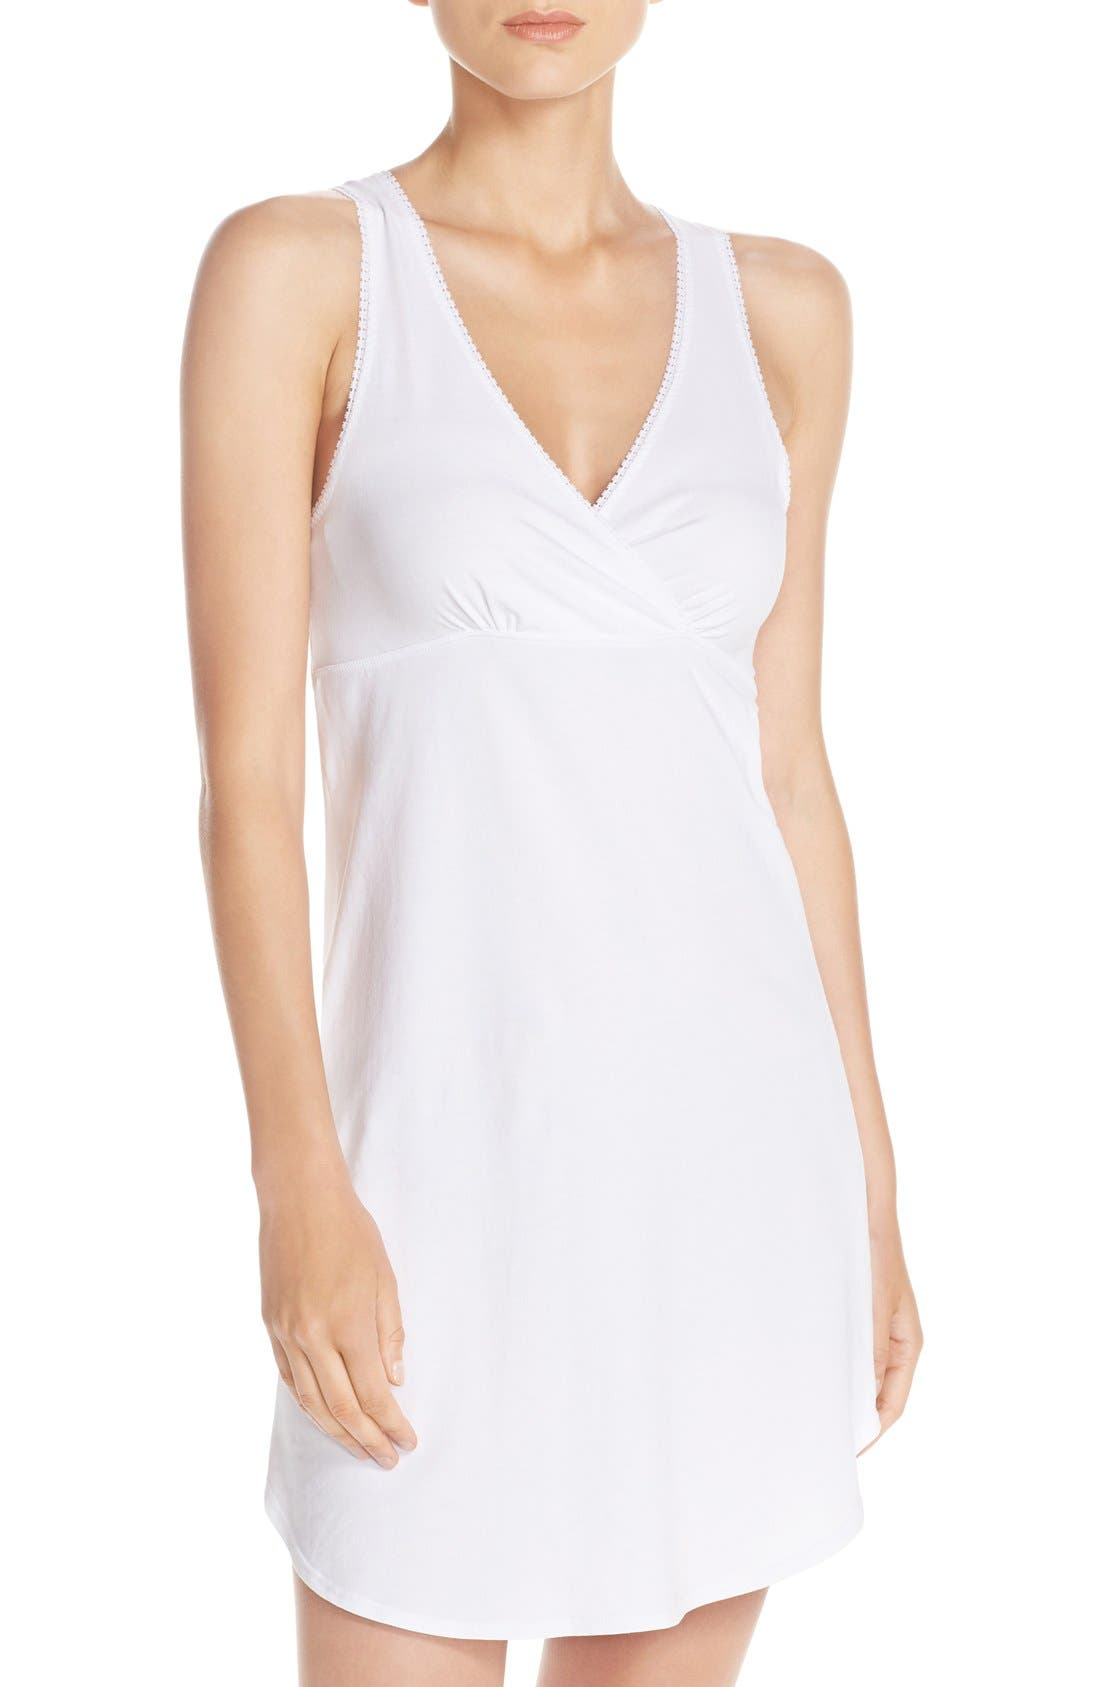 Naked Stretch Cotton Chemise